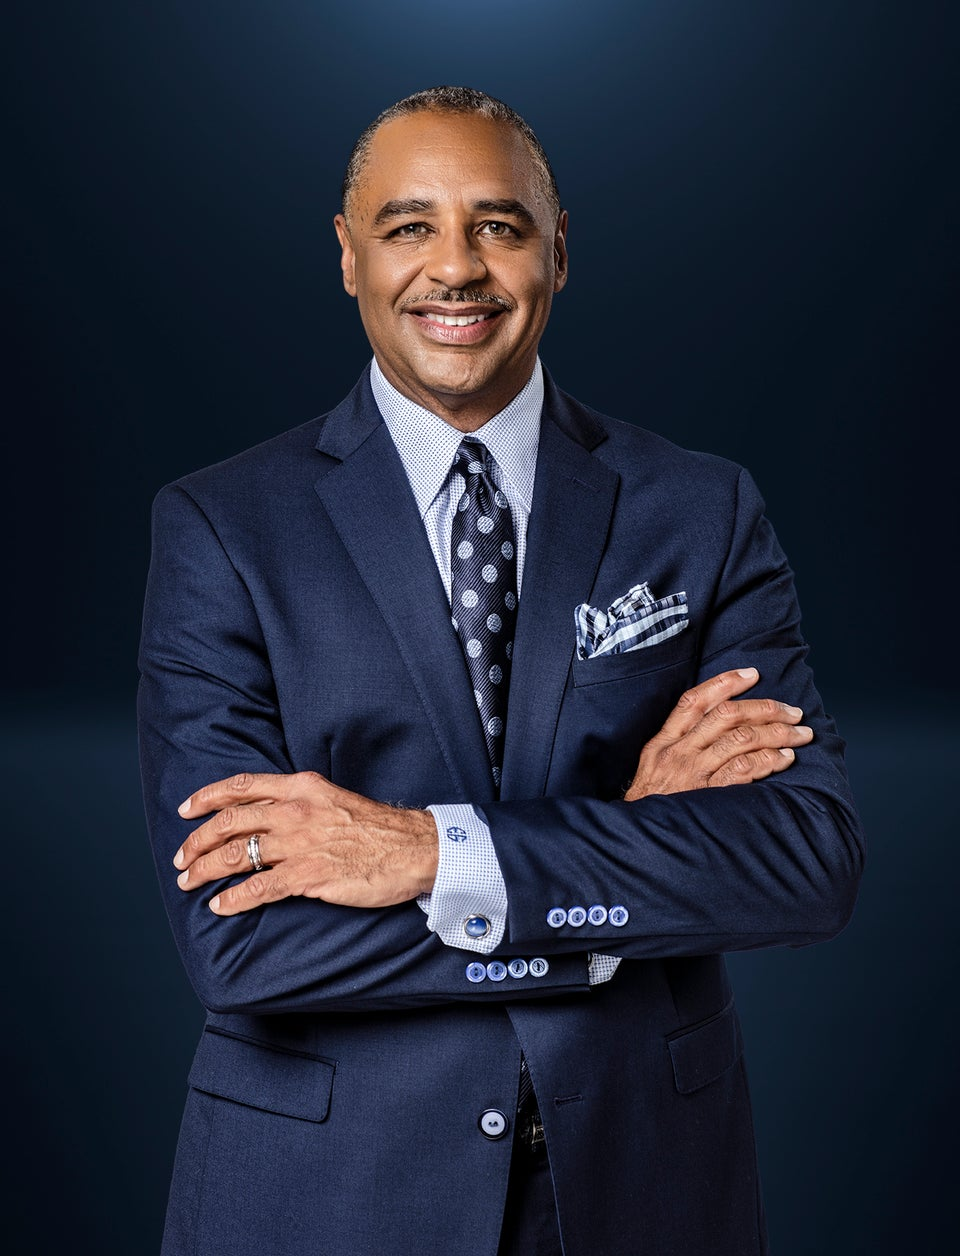 Ed Gordon Wants to Bring Black America's Stories to Network Television